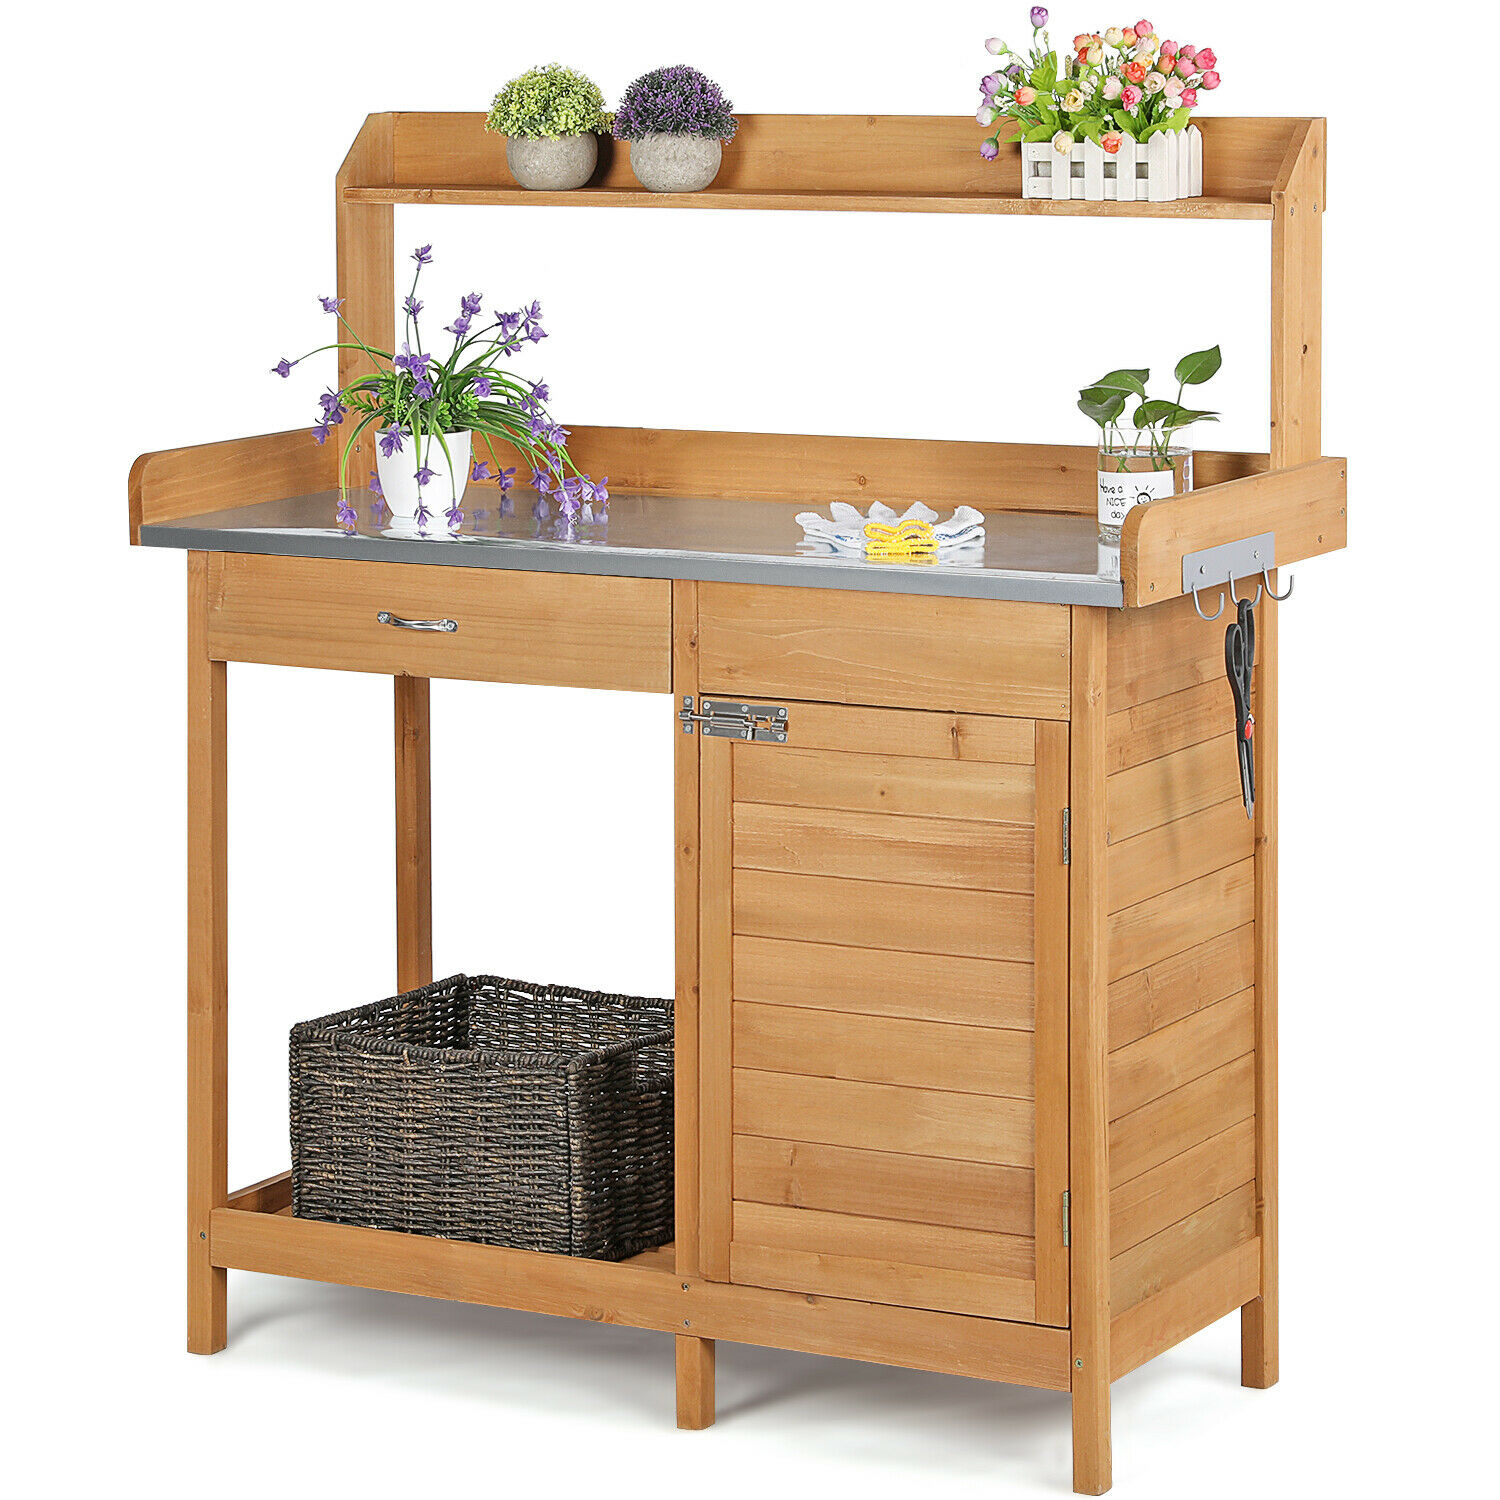 Outdoor Garden Potting Bench Table Planting Work Benches Cabinet Shelf  Outside